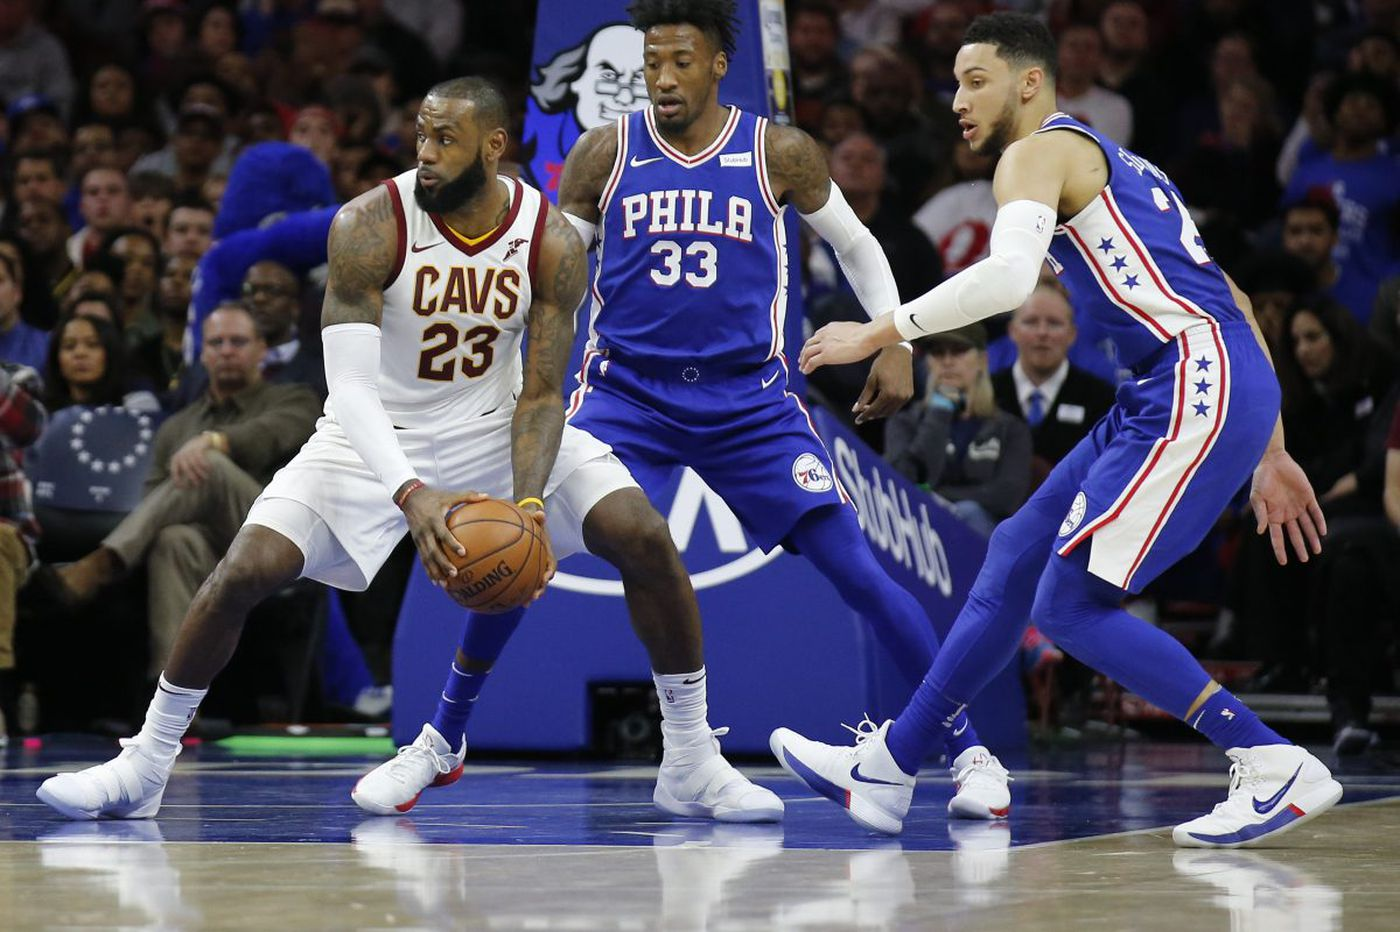 9a3ae5eb363 Sixers-Cavaliers preview  Brett Brown s squad eyes move up in NBA playoff  race